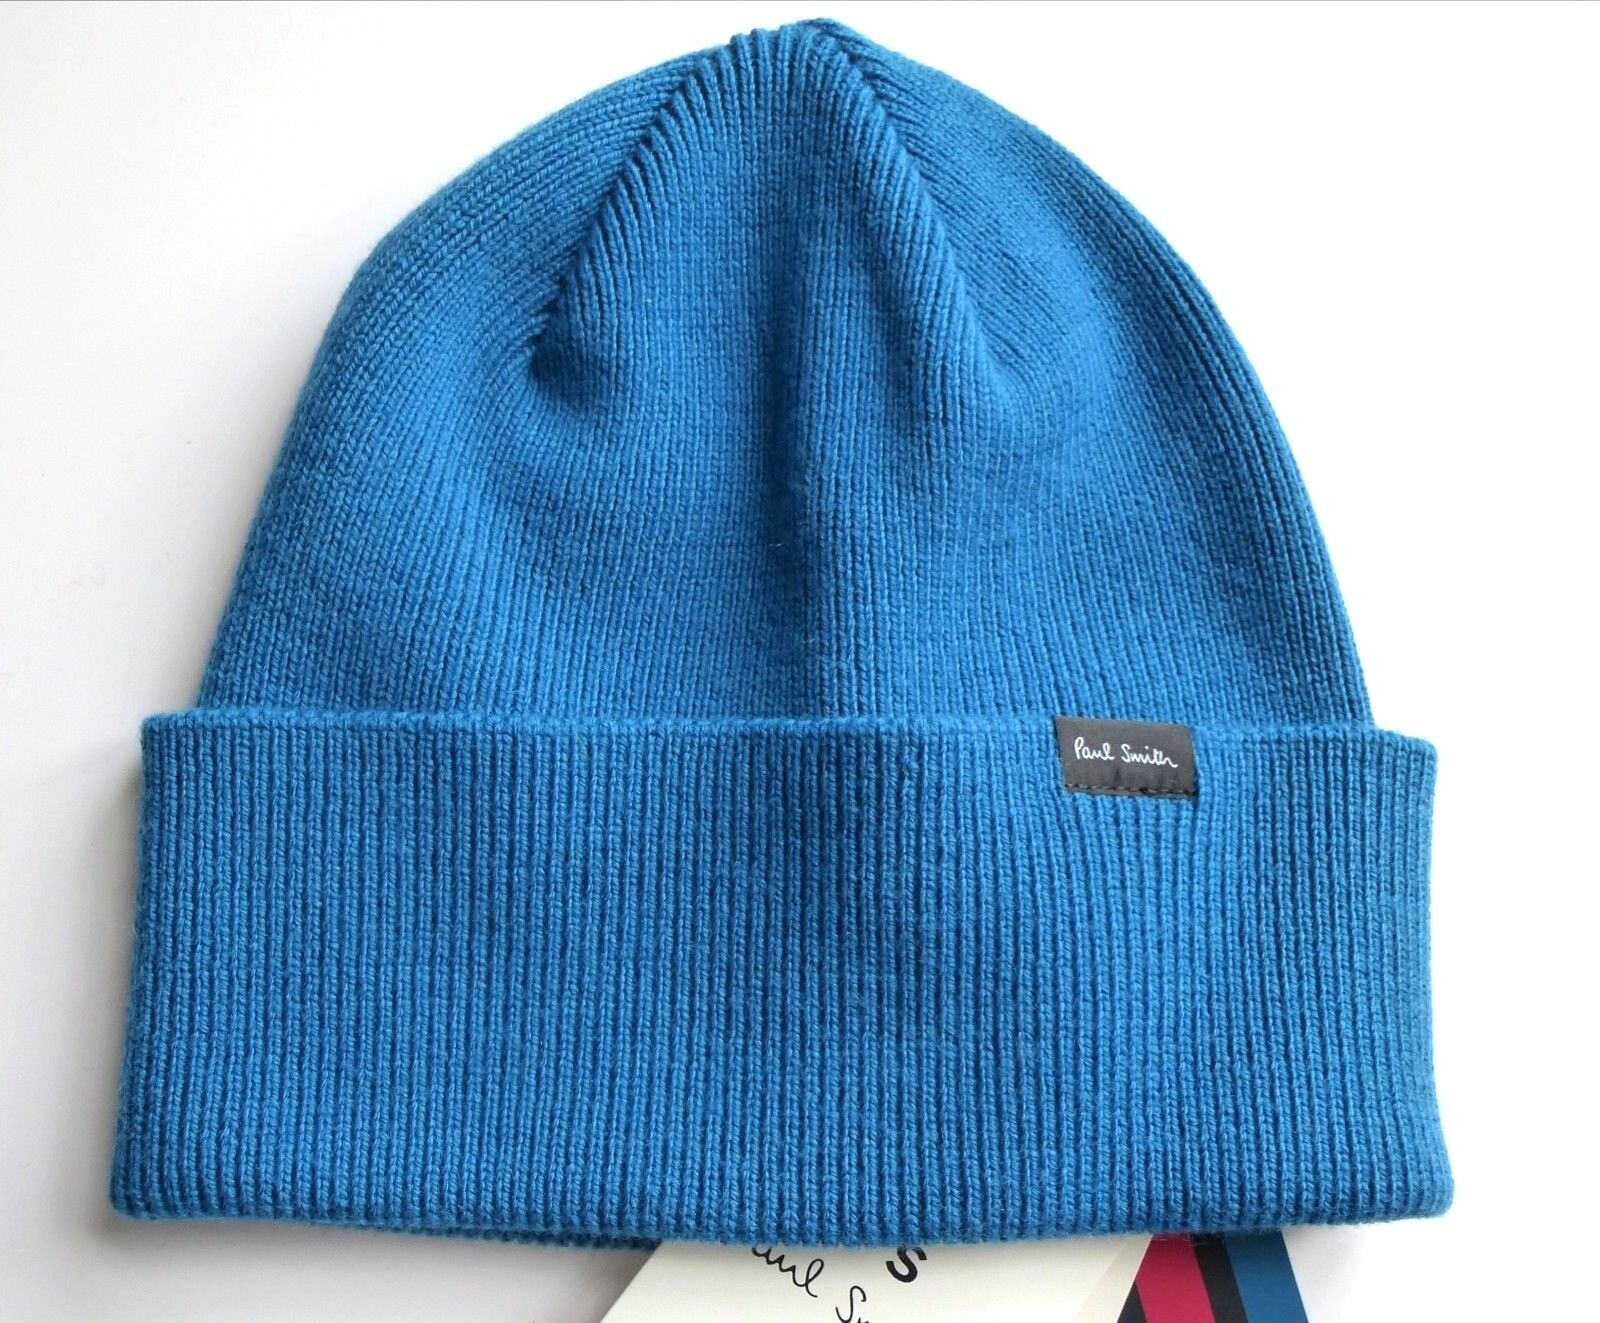 PAUL SMITH Petrol bluee 100% Merino Wool  Beanie Hat Toque MADE IN SCOTLAND Tags  brands online cheap sale